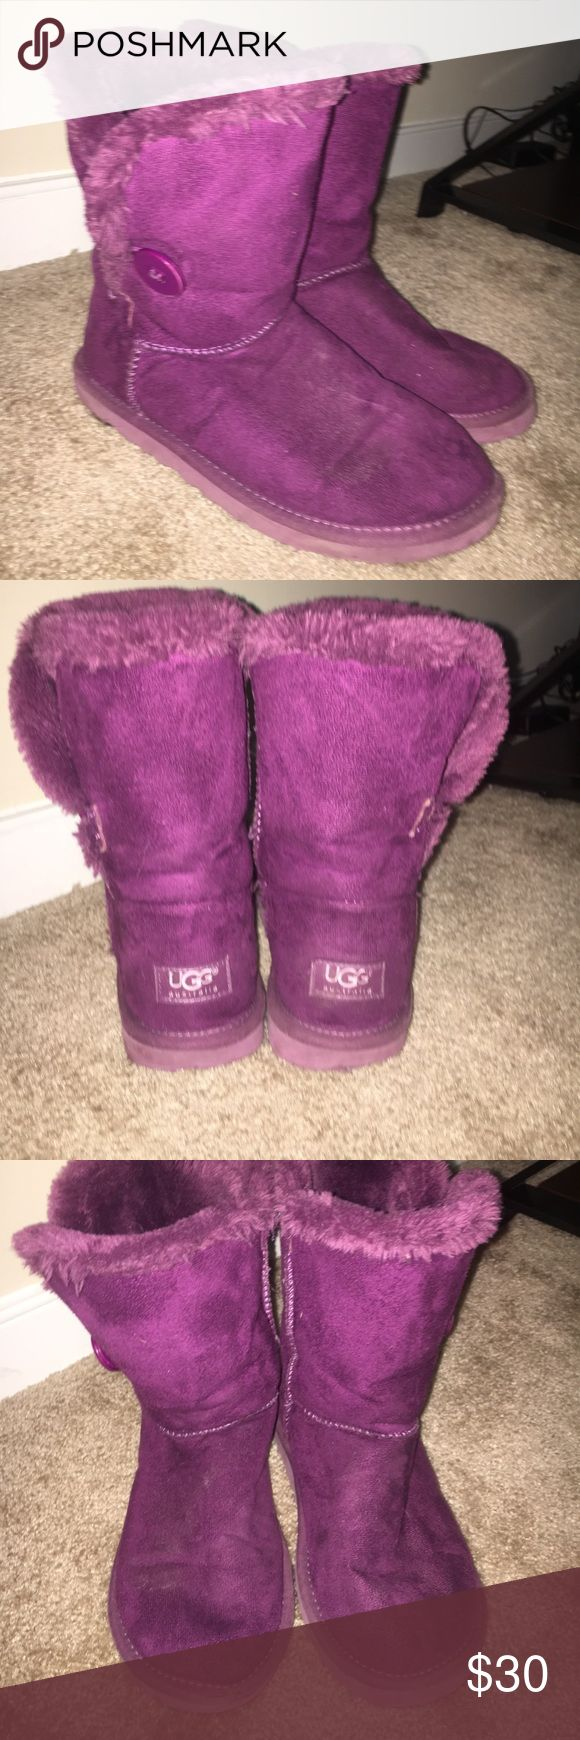 Purple UGGS bailey buttons. have been worn, but have LOTS of life in them. these are in good condition. open to offers. UGG Shoes Winter & Rain Boots